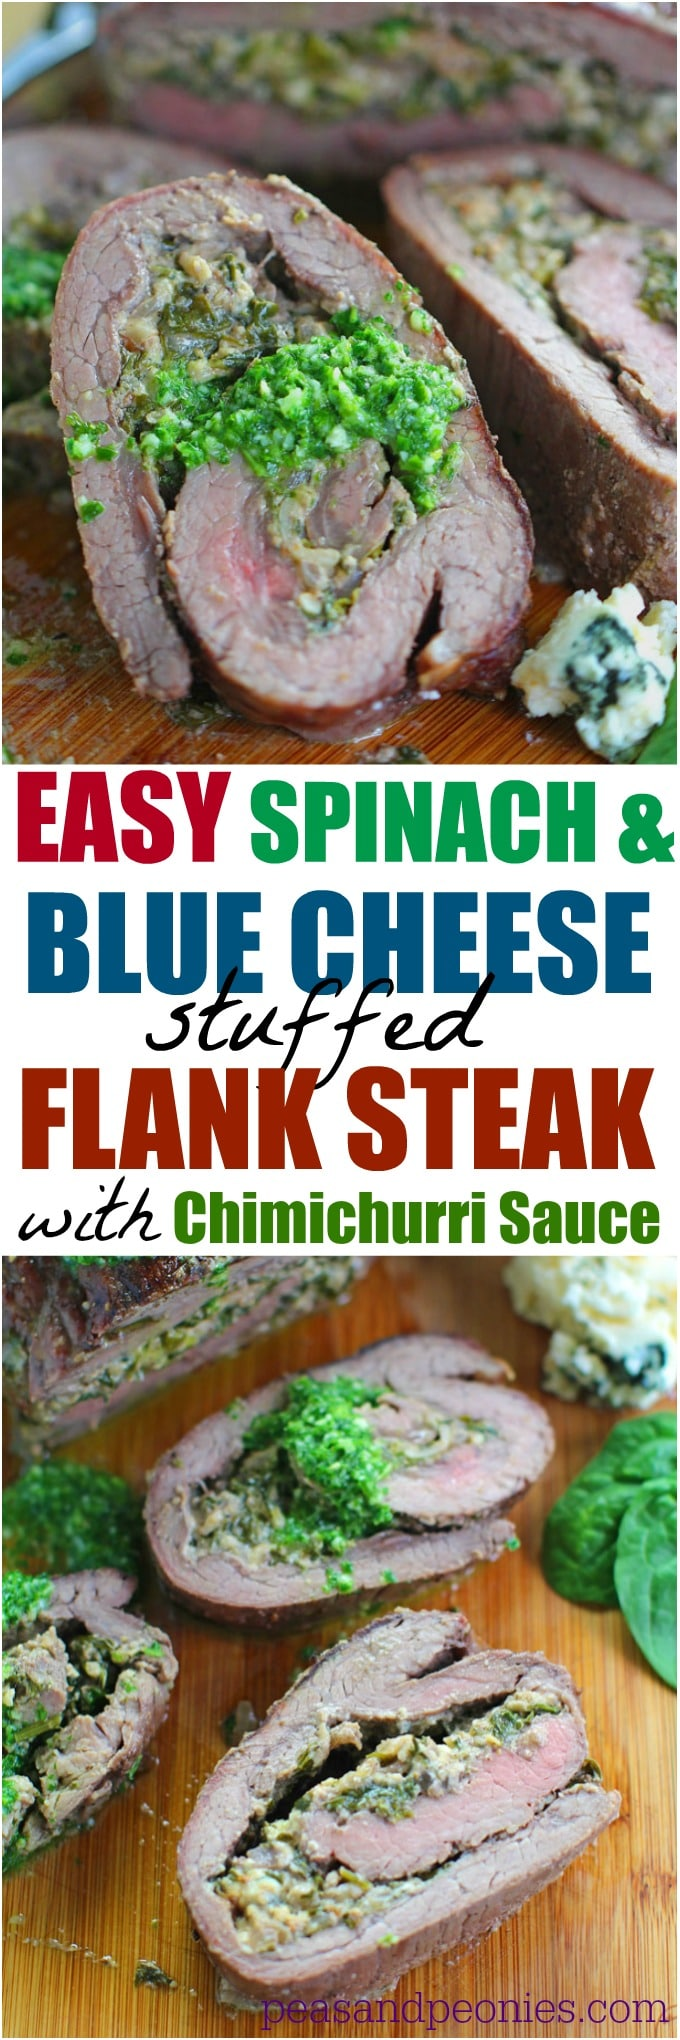 Stuffed Flank Steak with Spinach and Blue Cheese is packed with garlic, caramelized onions and walnuts. Very easy to make and packed with amazing flavors!